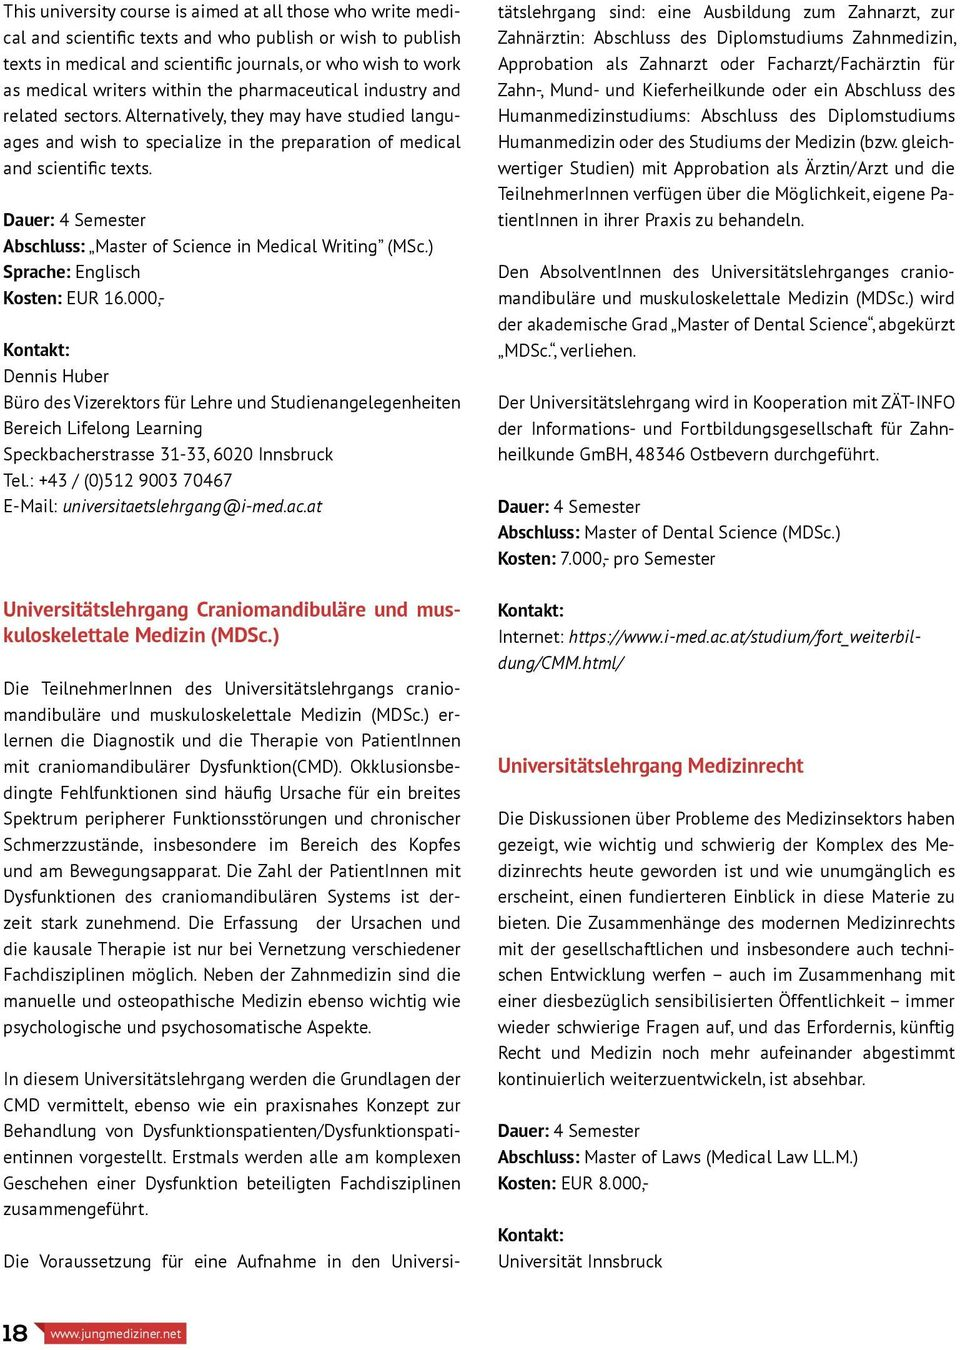 Dauer: 4 Semester Abschluss: Master of Science in Medical Writing (MSc.) Sprache: Englisch Kosten: EUR 16.